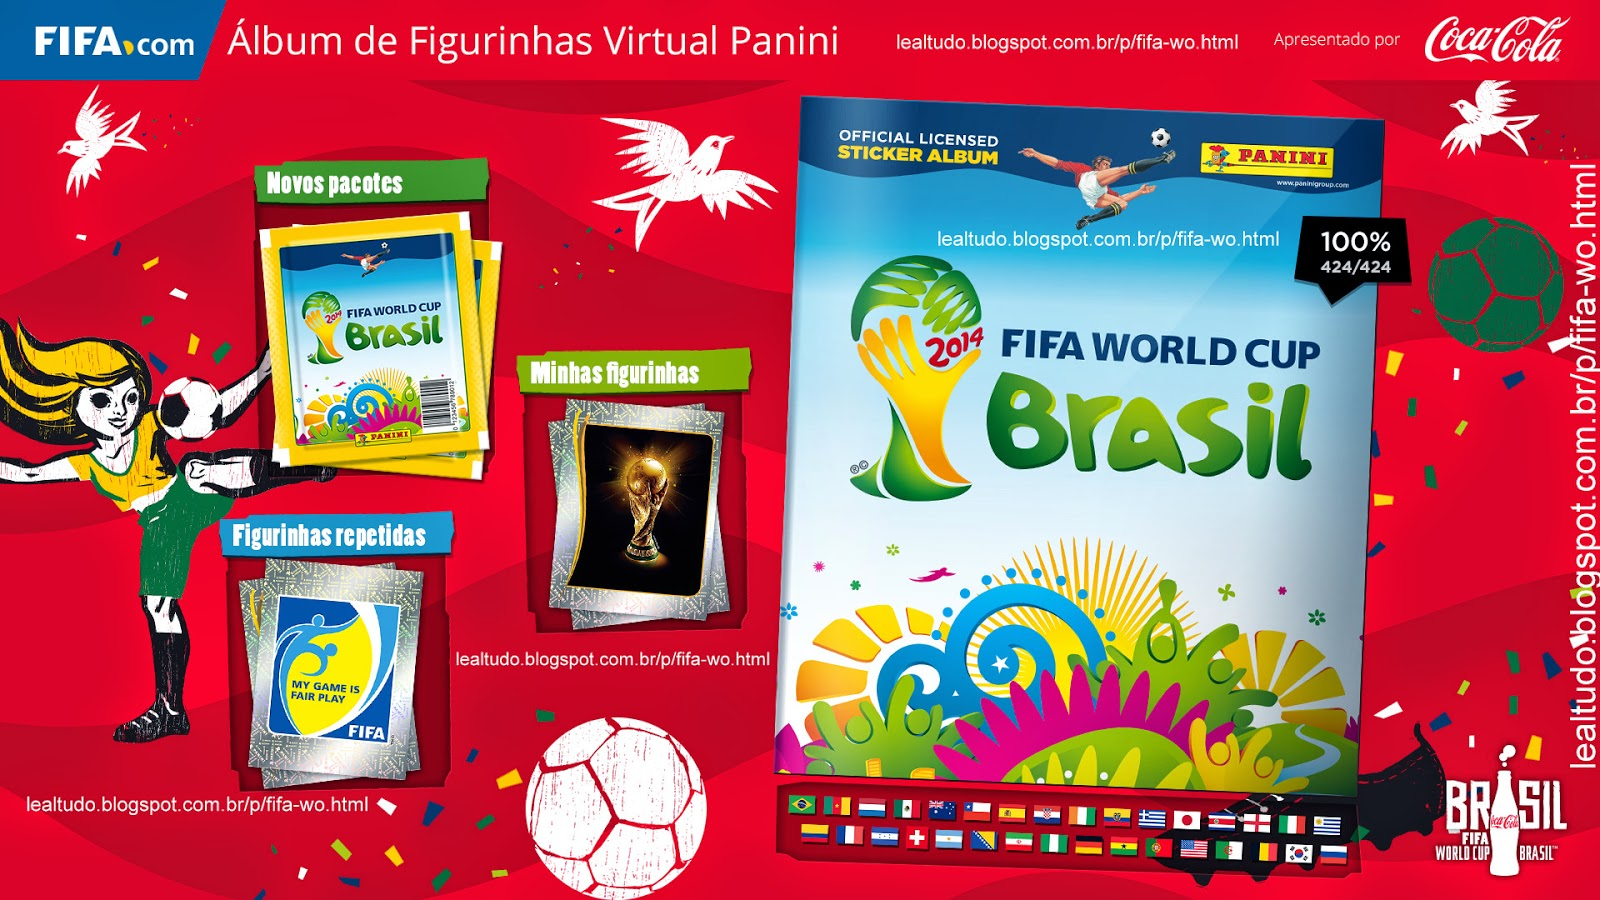 Album Wallpaper Screensaver Papel de Parede Fifa World Cup BRAZIL 2014 LIVE COPA DO MUNDO Sticker Figurinha Download Lealtudo